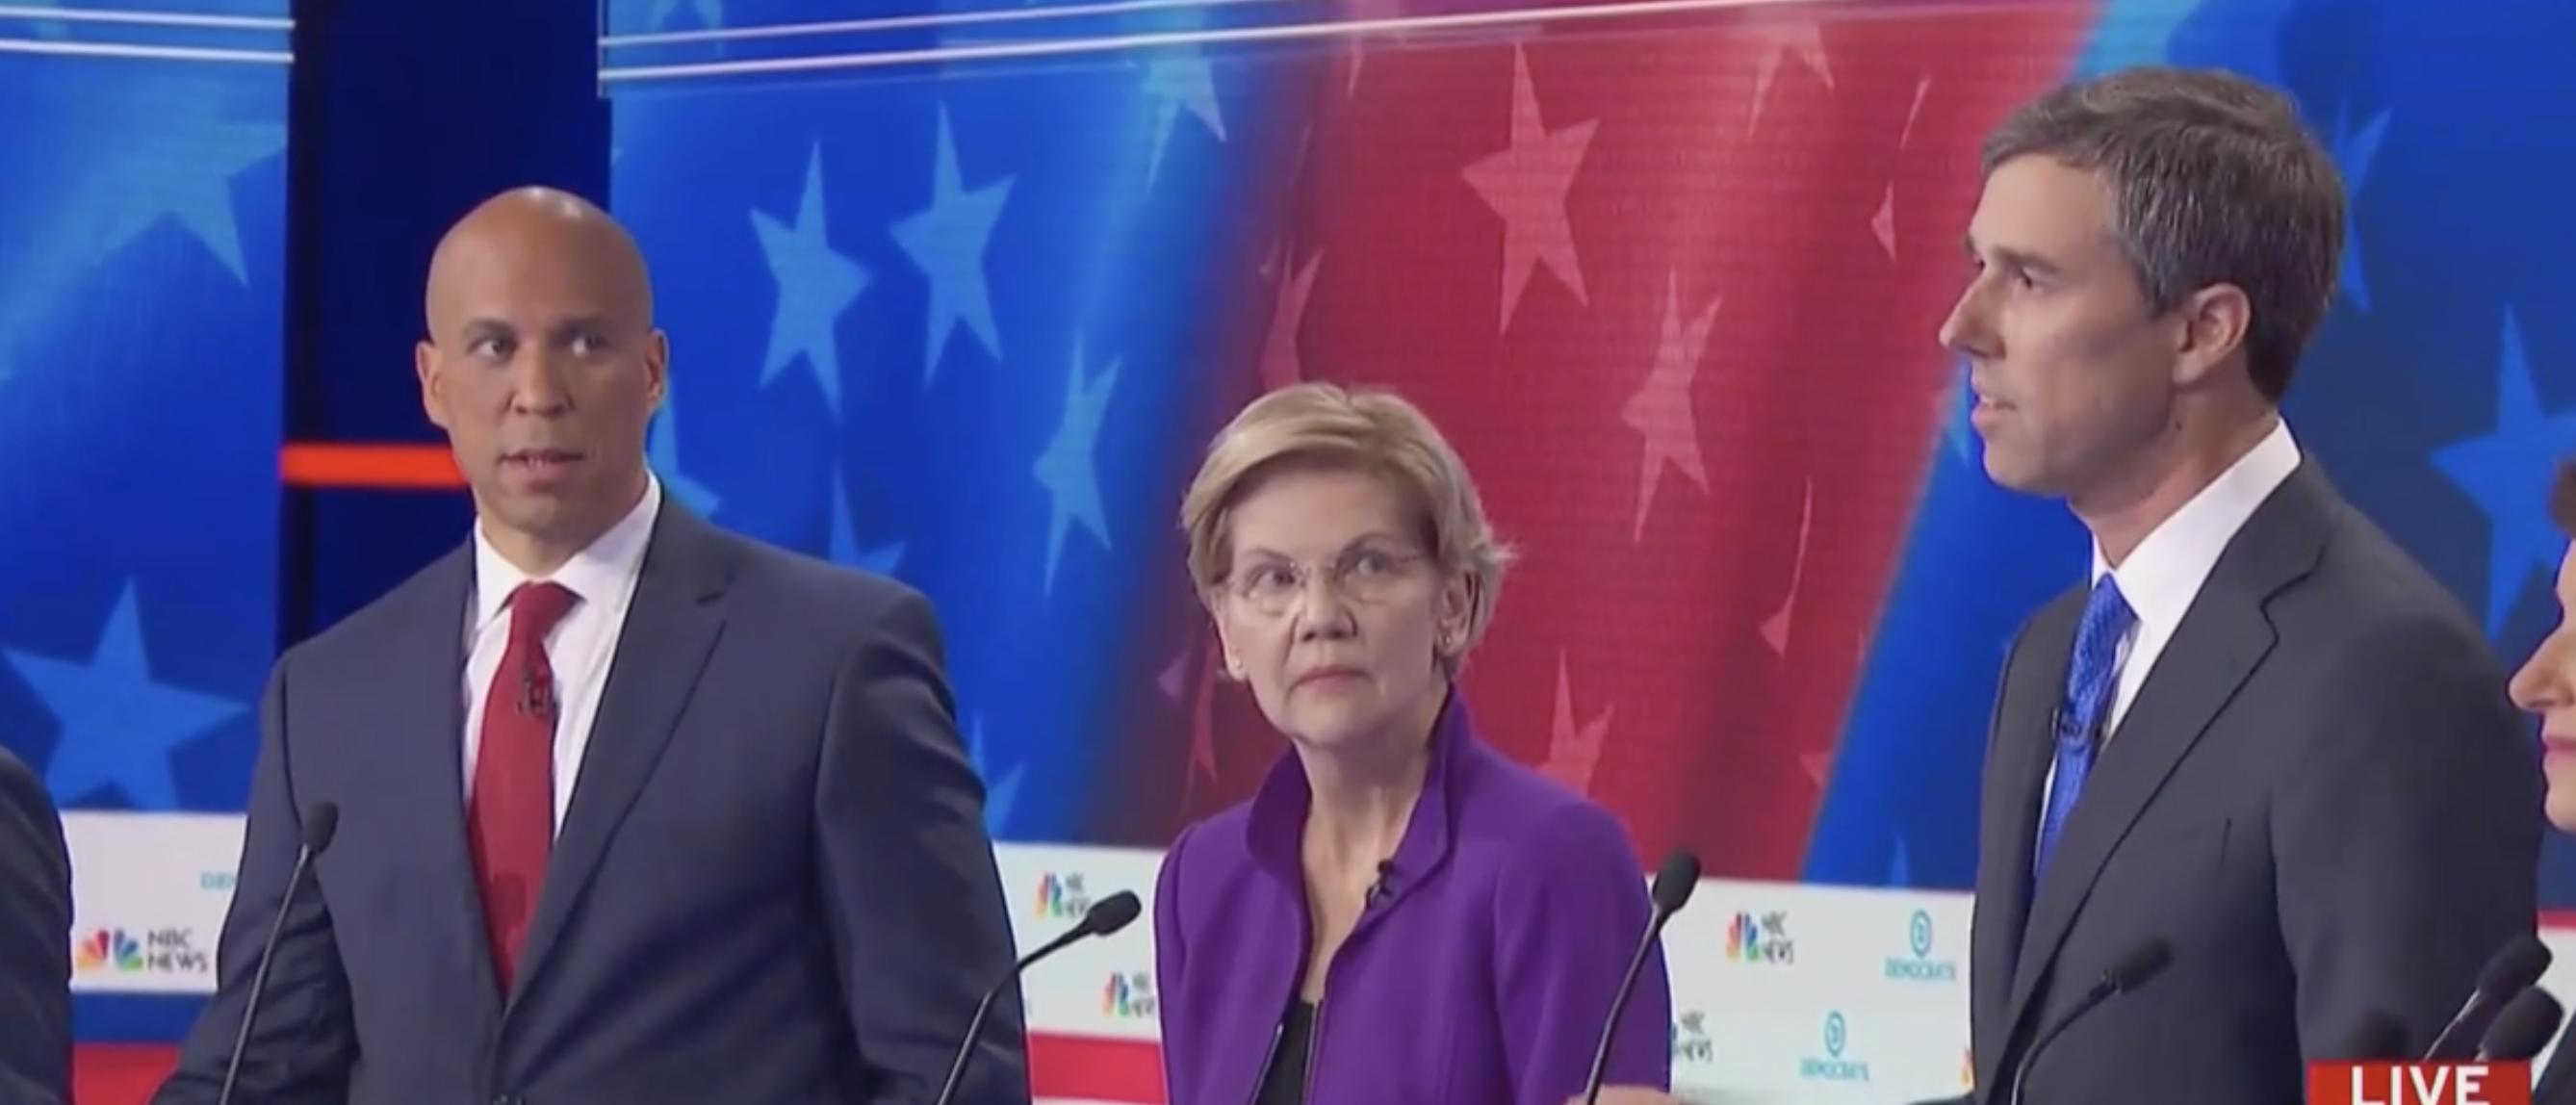 Cory Booker looked shocked as Beto O'Rouke answered his first question of the evening in Spanish. (Screenshot Youtube/MSNBC)